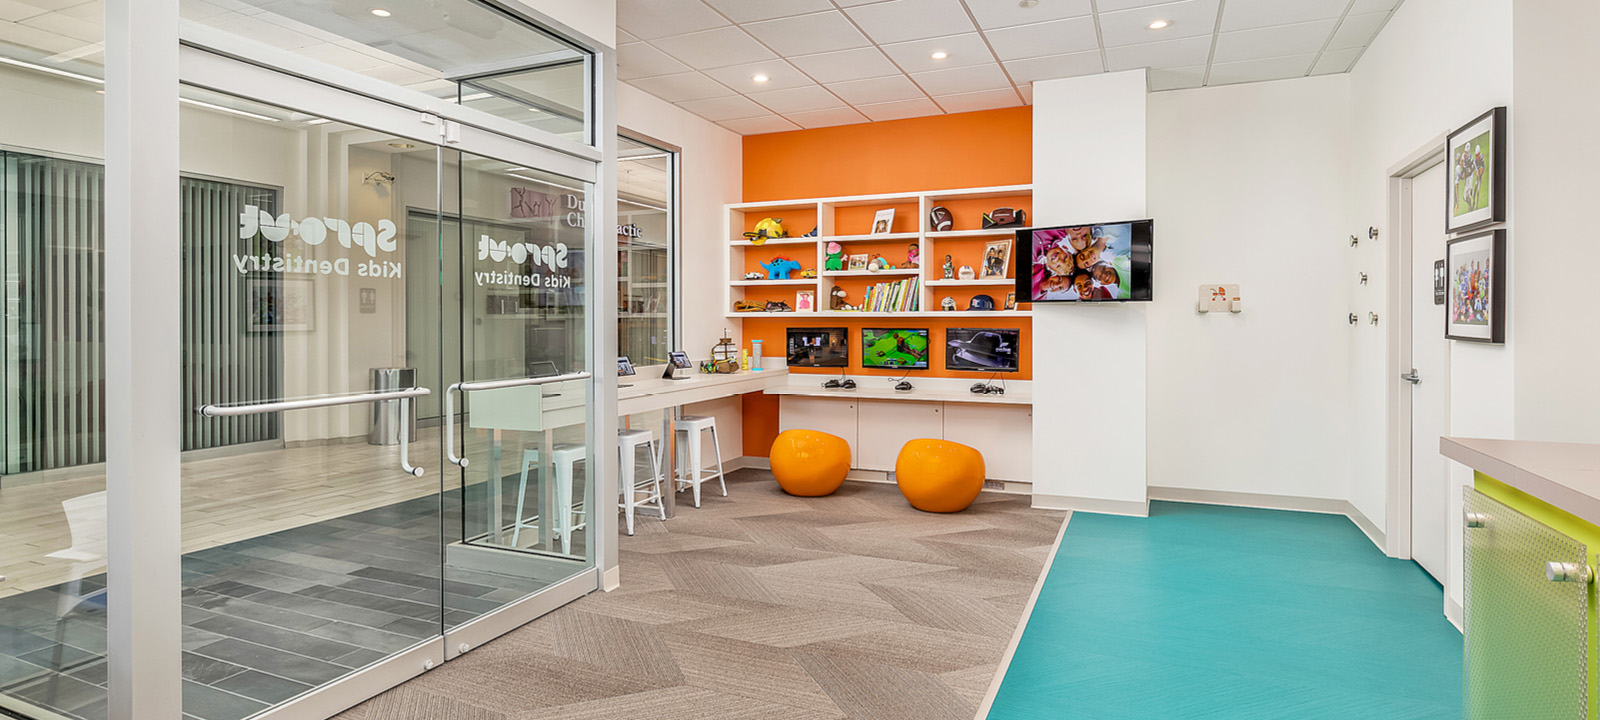 Sprout Dental waiting room and play area